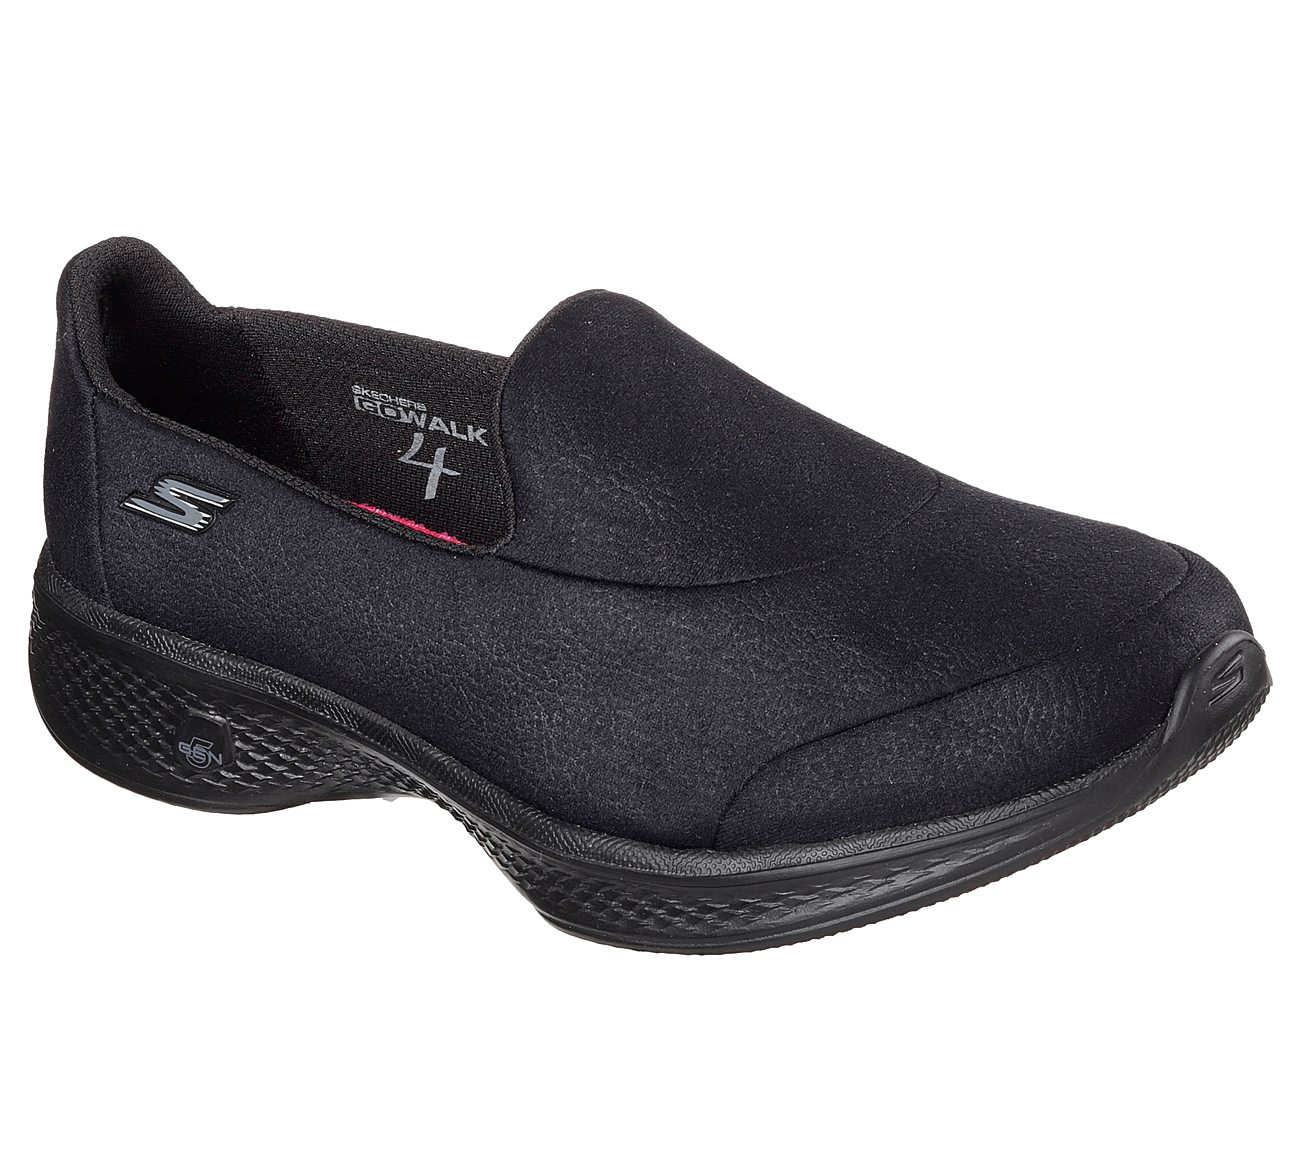 skechers like shoes